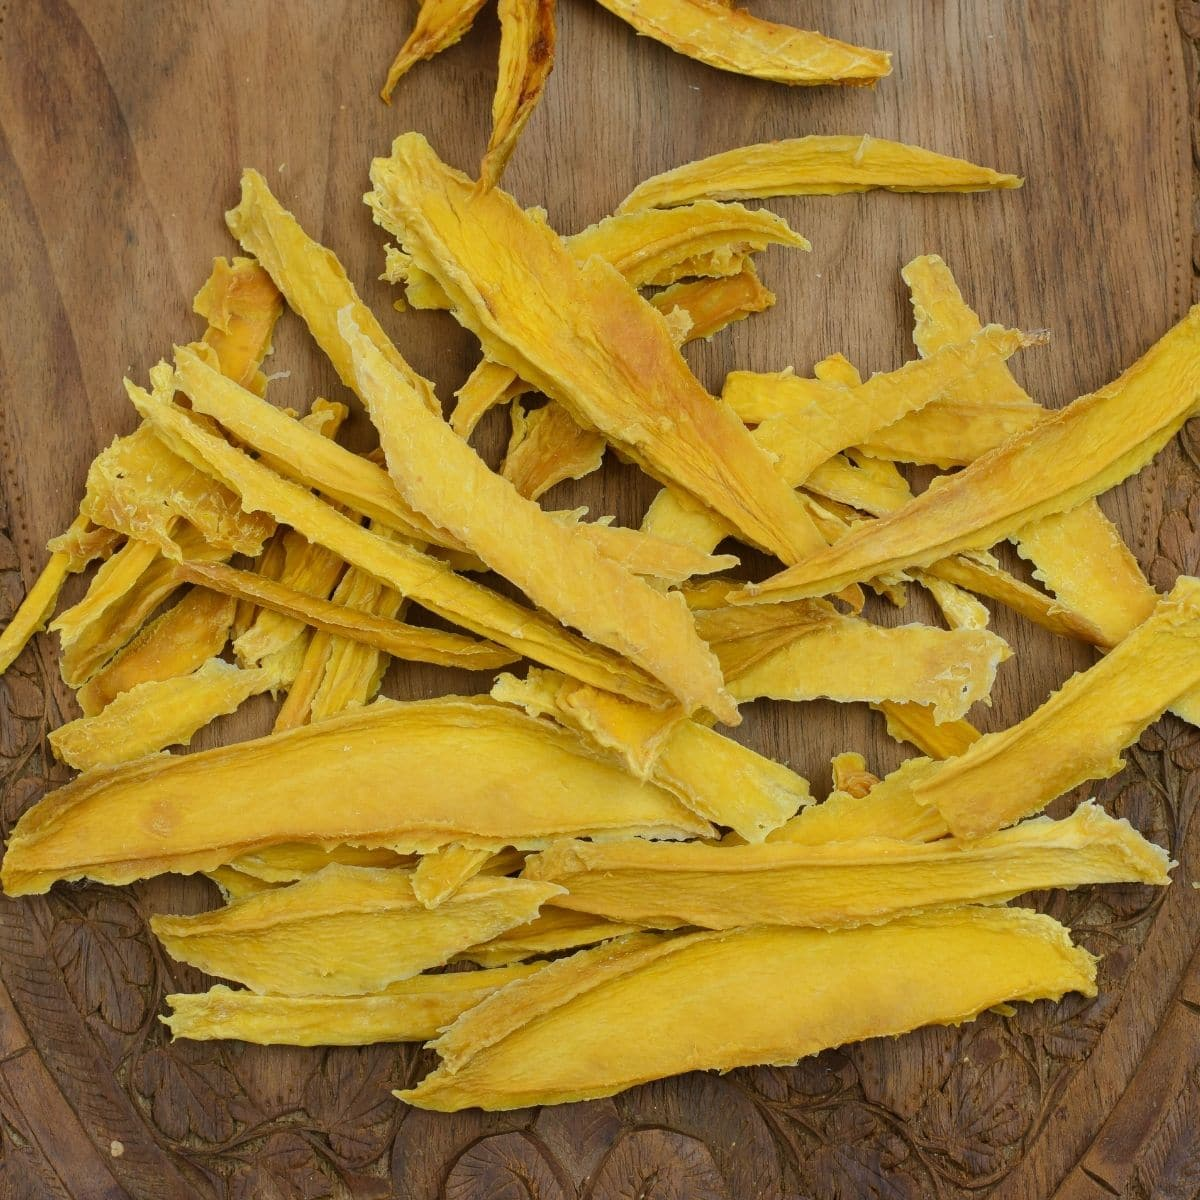 Dried sliced mango pieces on a wooden cutting board.